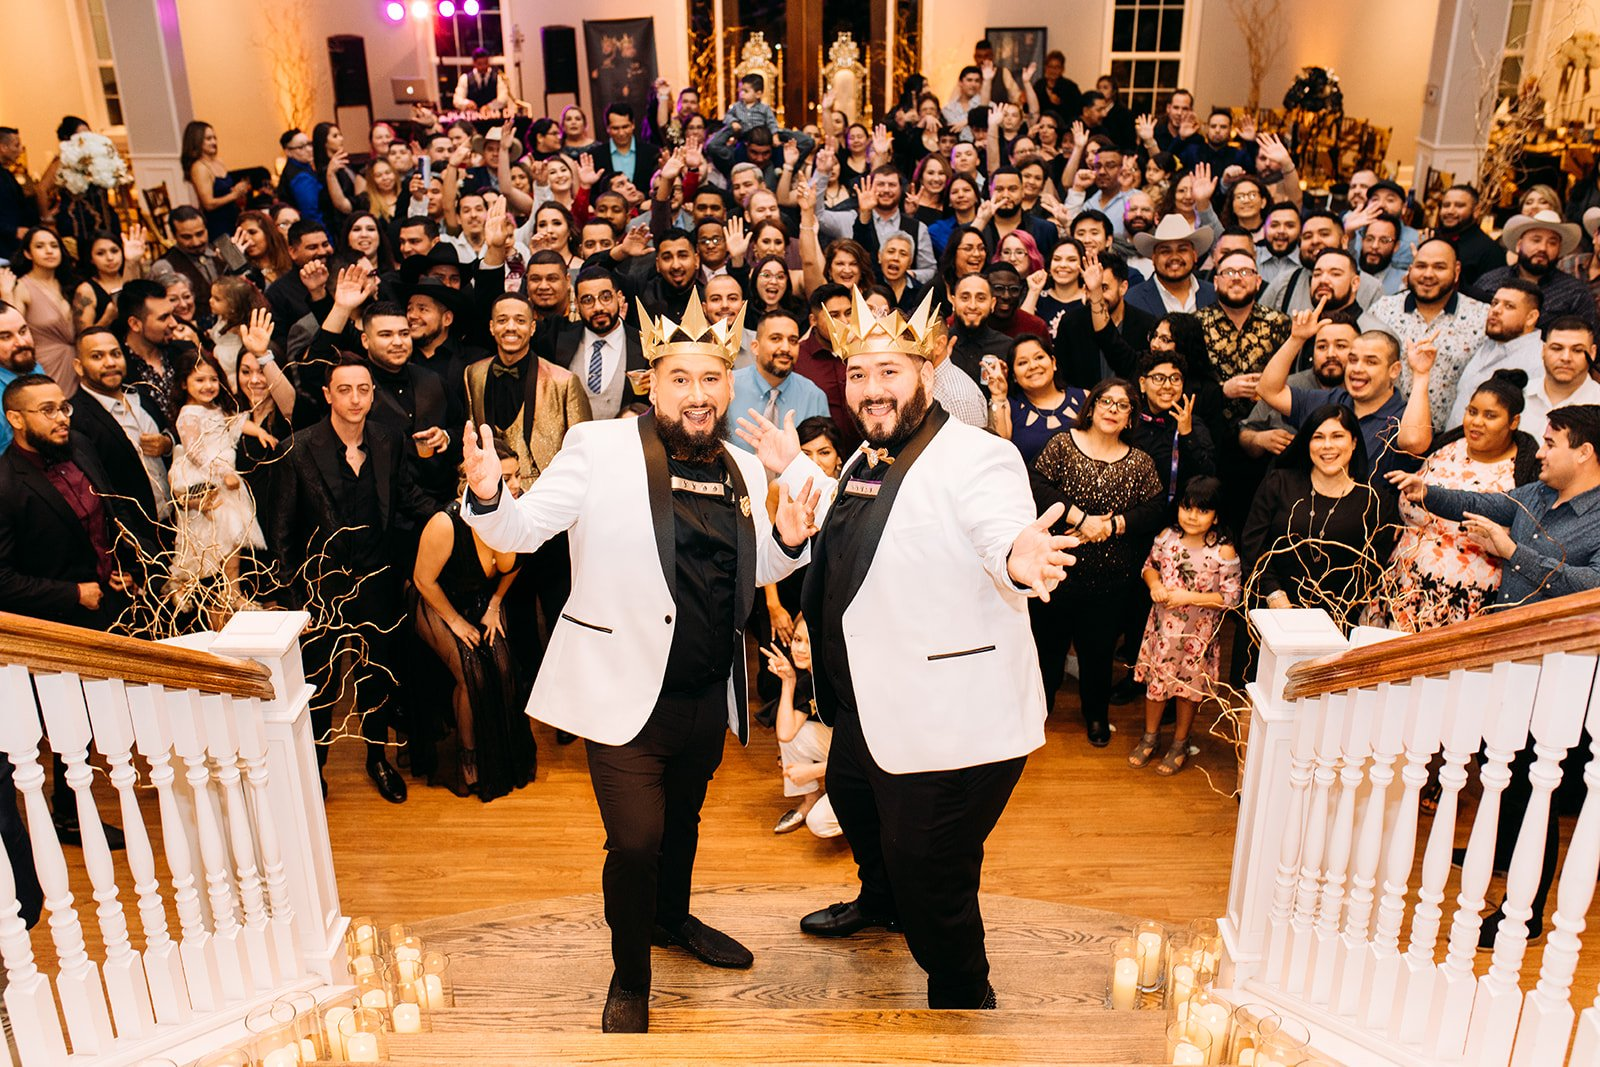 CJ &Tony - SanAntonioWeddings.com - BridalBuzz